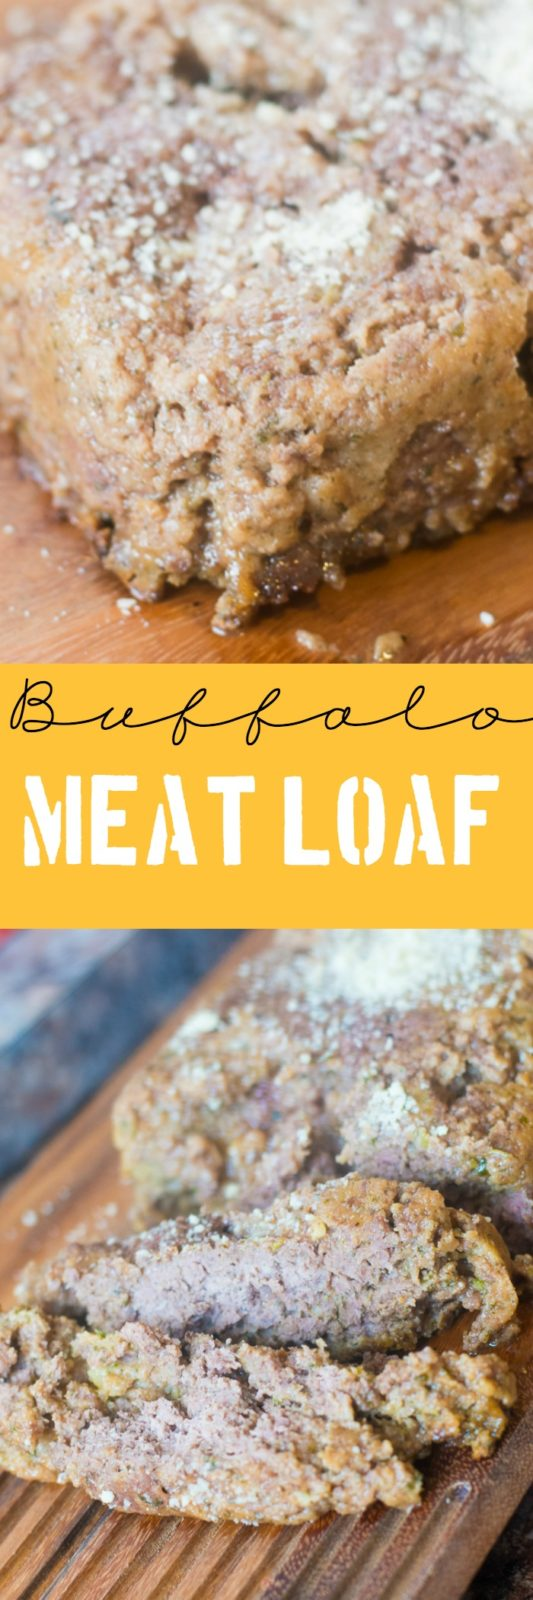 A flavorful and fancy buffalo meatloaf recipe - so good!